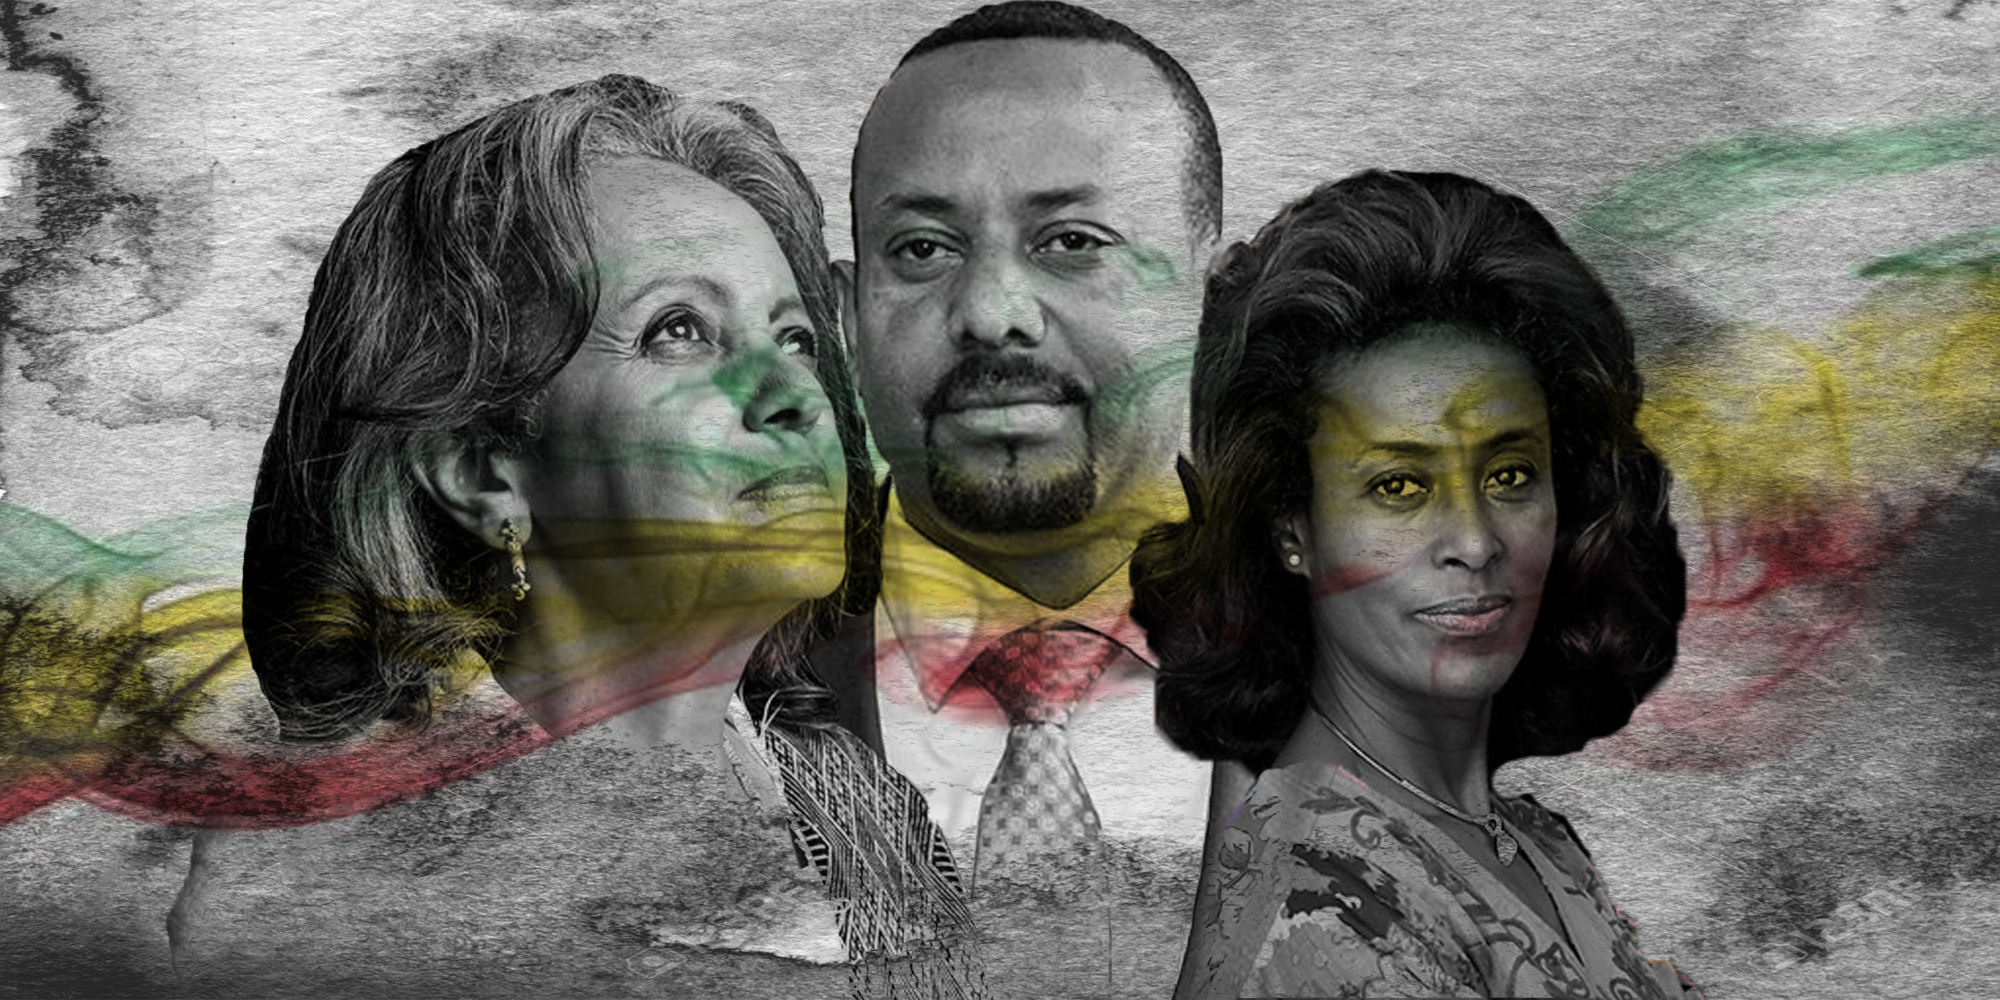 Sahle-Work Zewde, President of Ethiopia; Abiy Ahmed, Prime Minister of Ethiopia; and Meaza Ashenafi, President of the Supreme Court of Ethiopia.